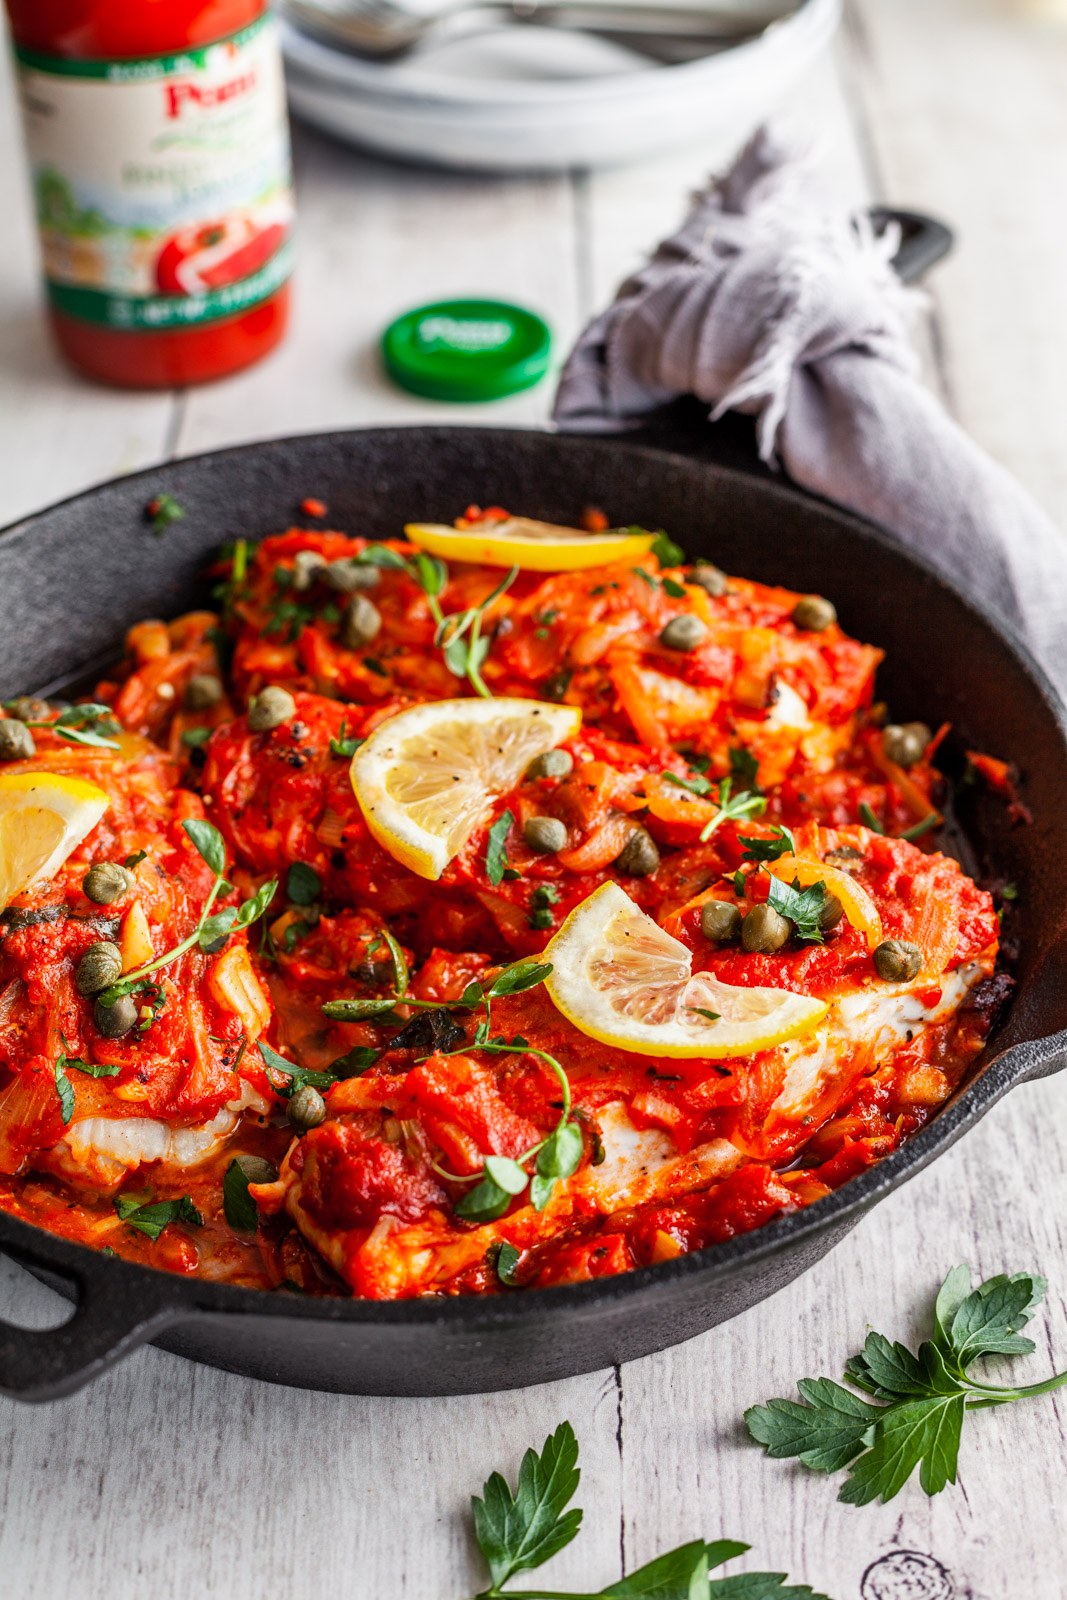 Greekstyle Baked Fish With Tomatoes and Onions (Bourdeto)